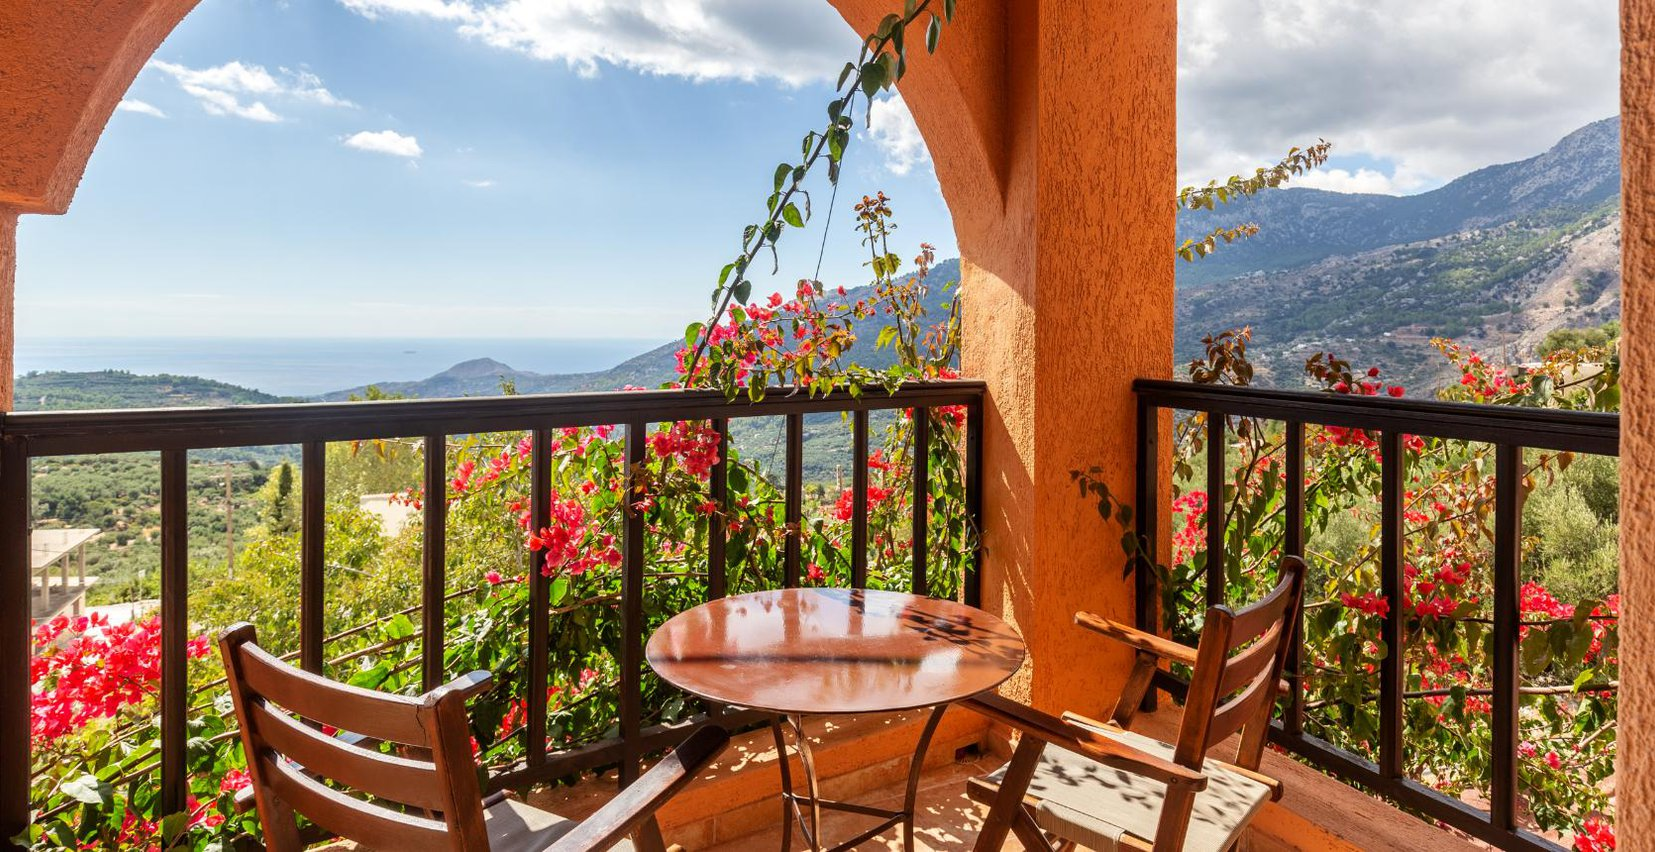 The balcony of the Mint maisonette of Mala Villa with a table, chairs, the plants, and the view of the mountains in the background